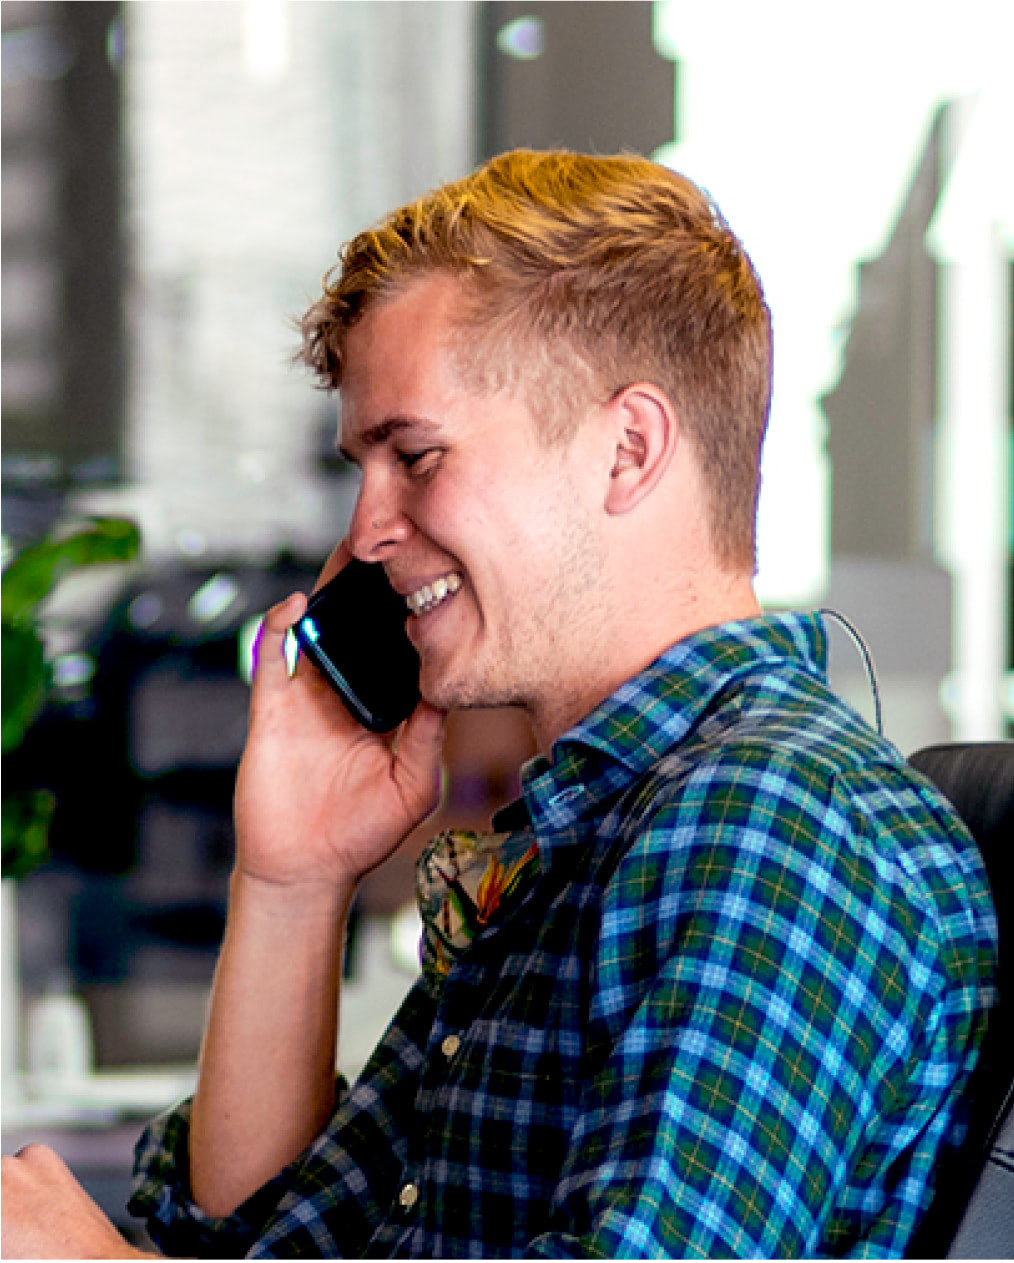 Laughing young man on phone